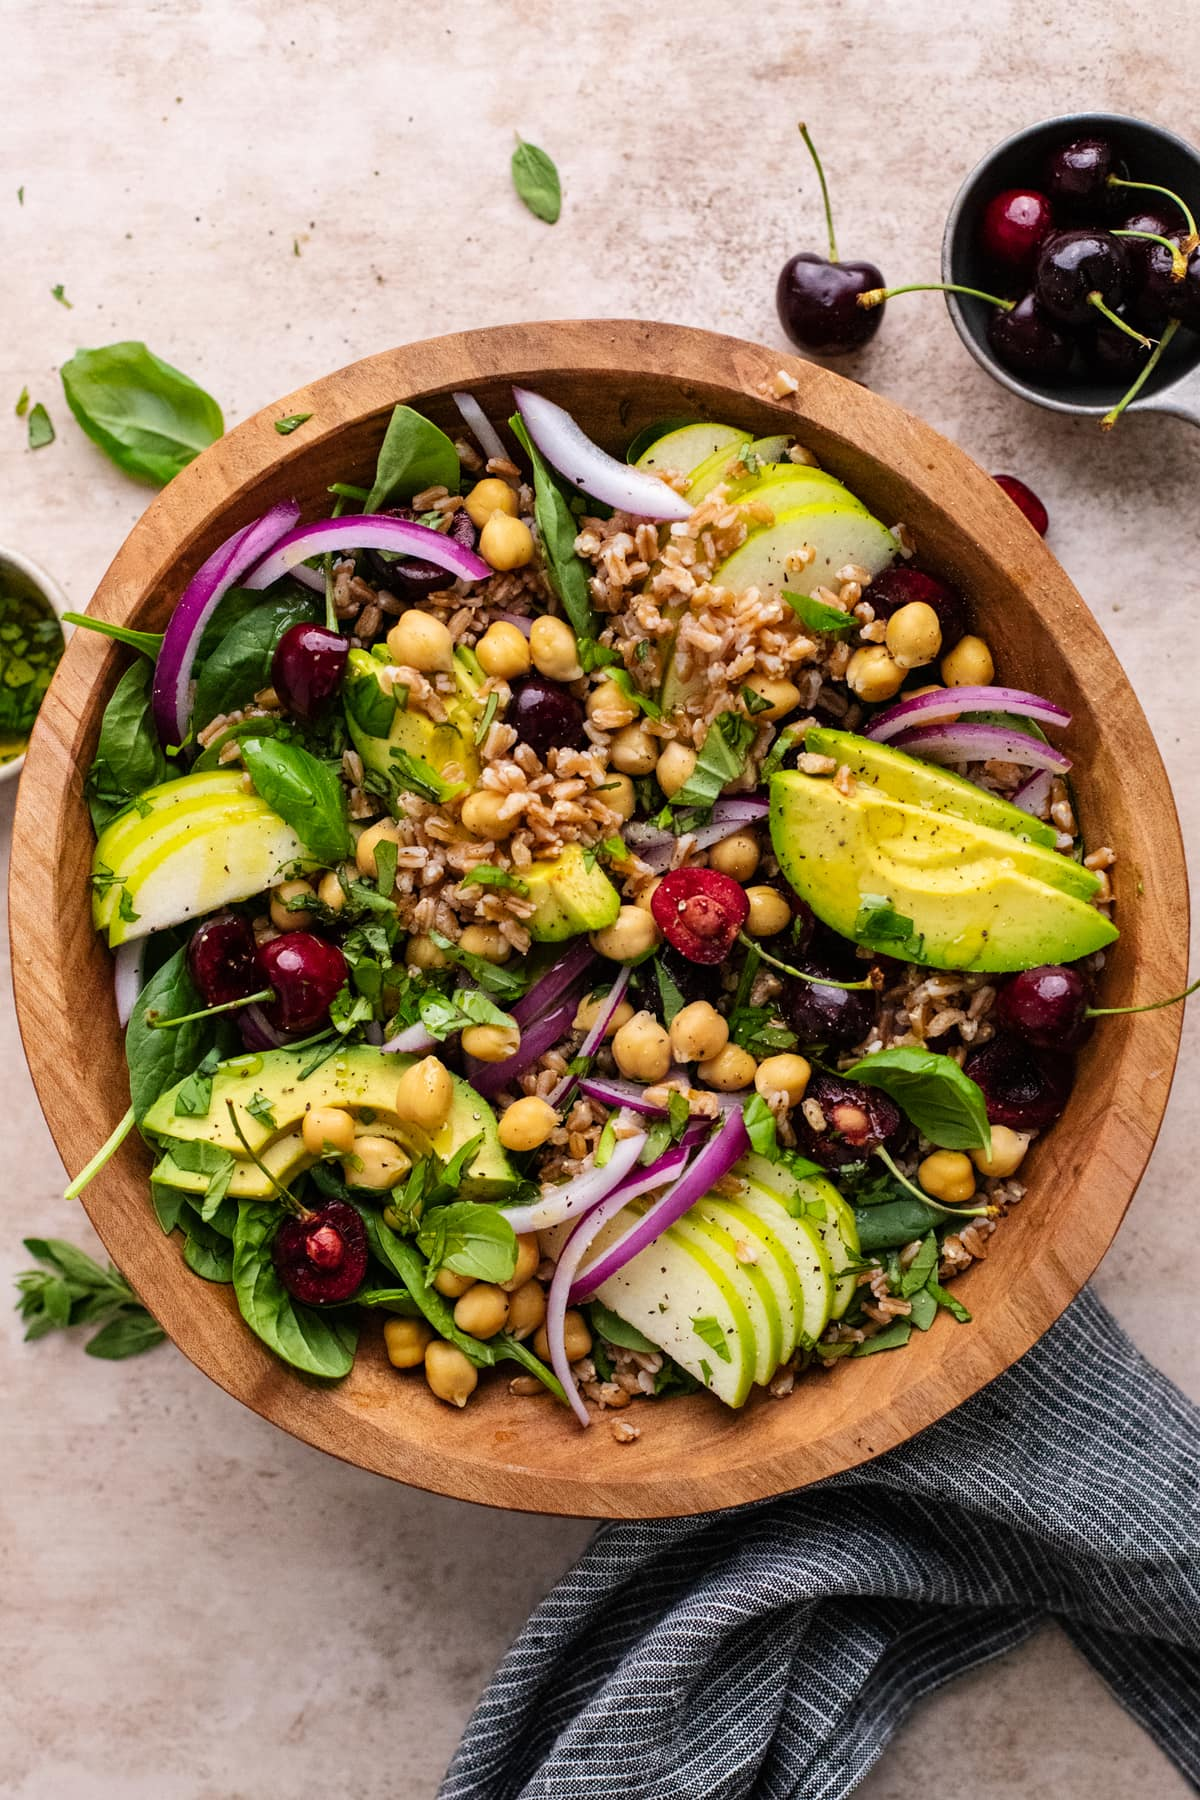 wooden bowl filled with farro salad topped with sliced avocados and cherries.